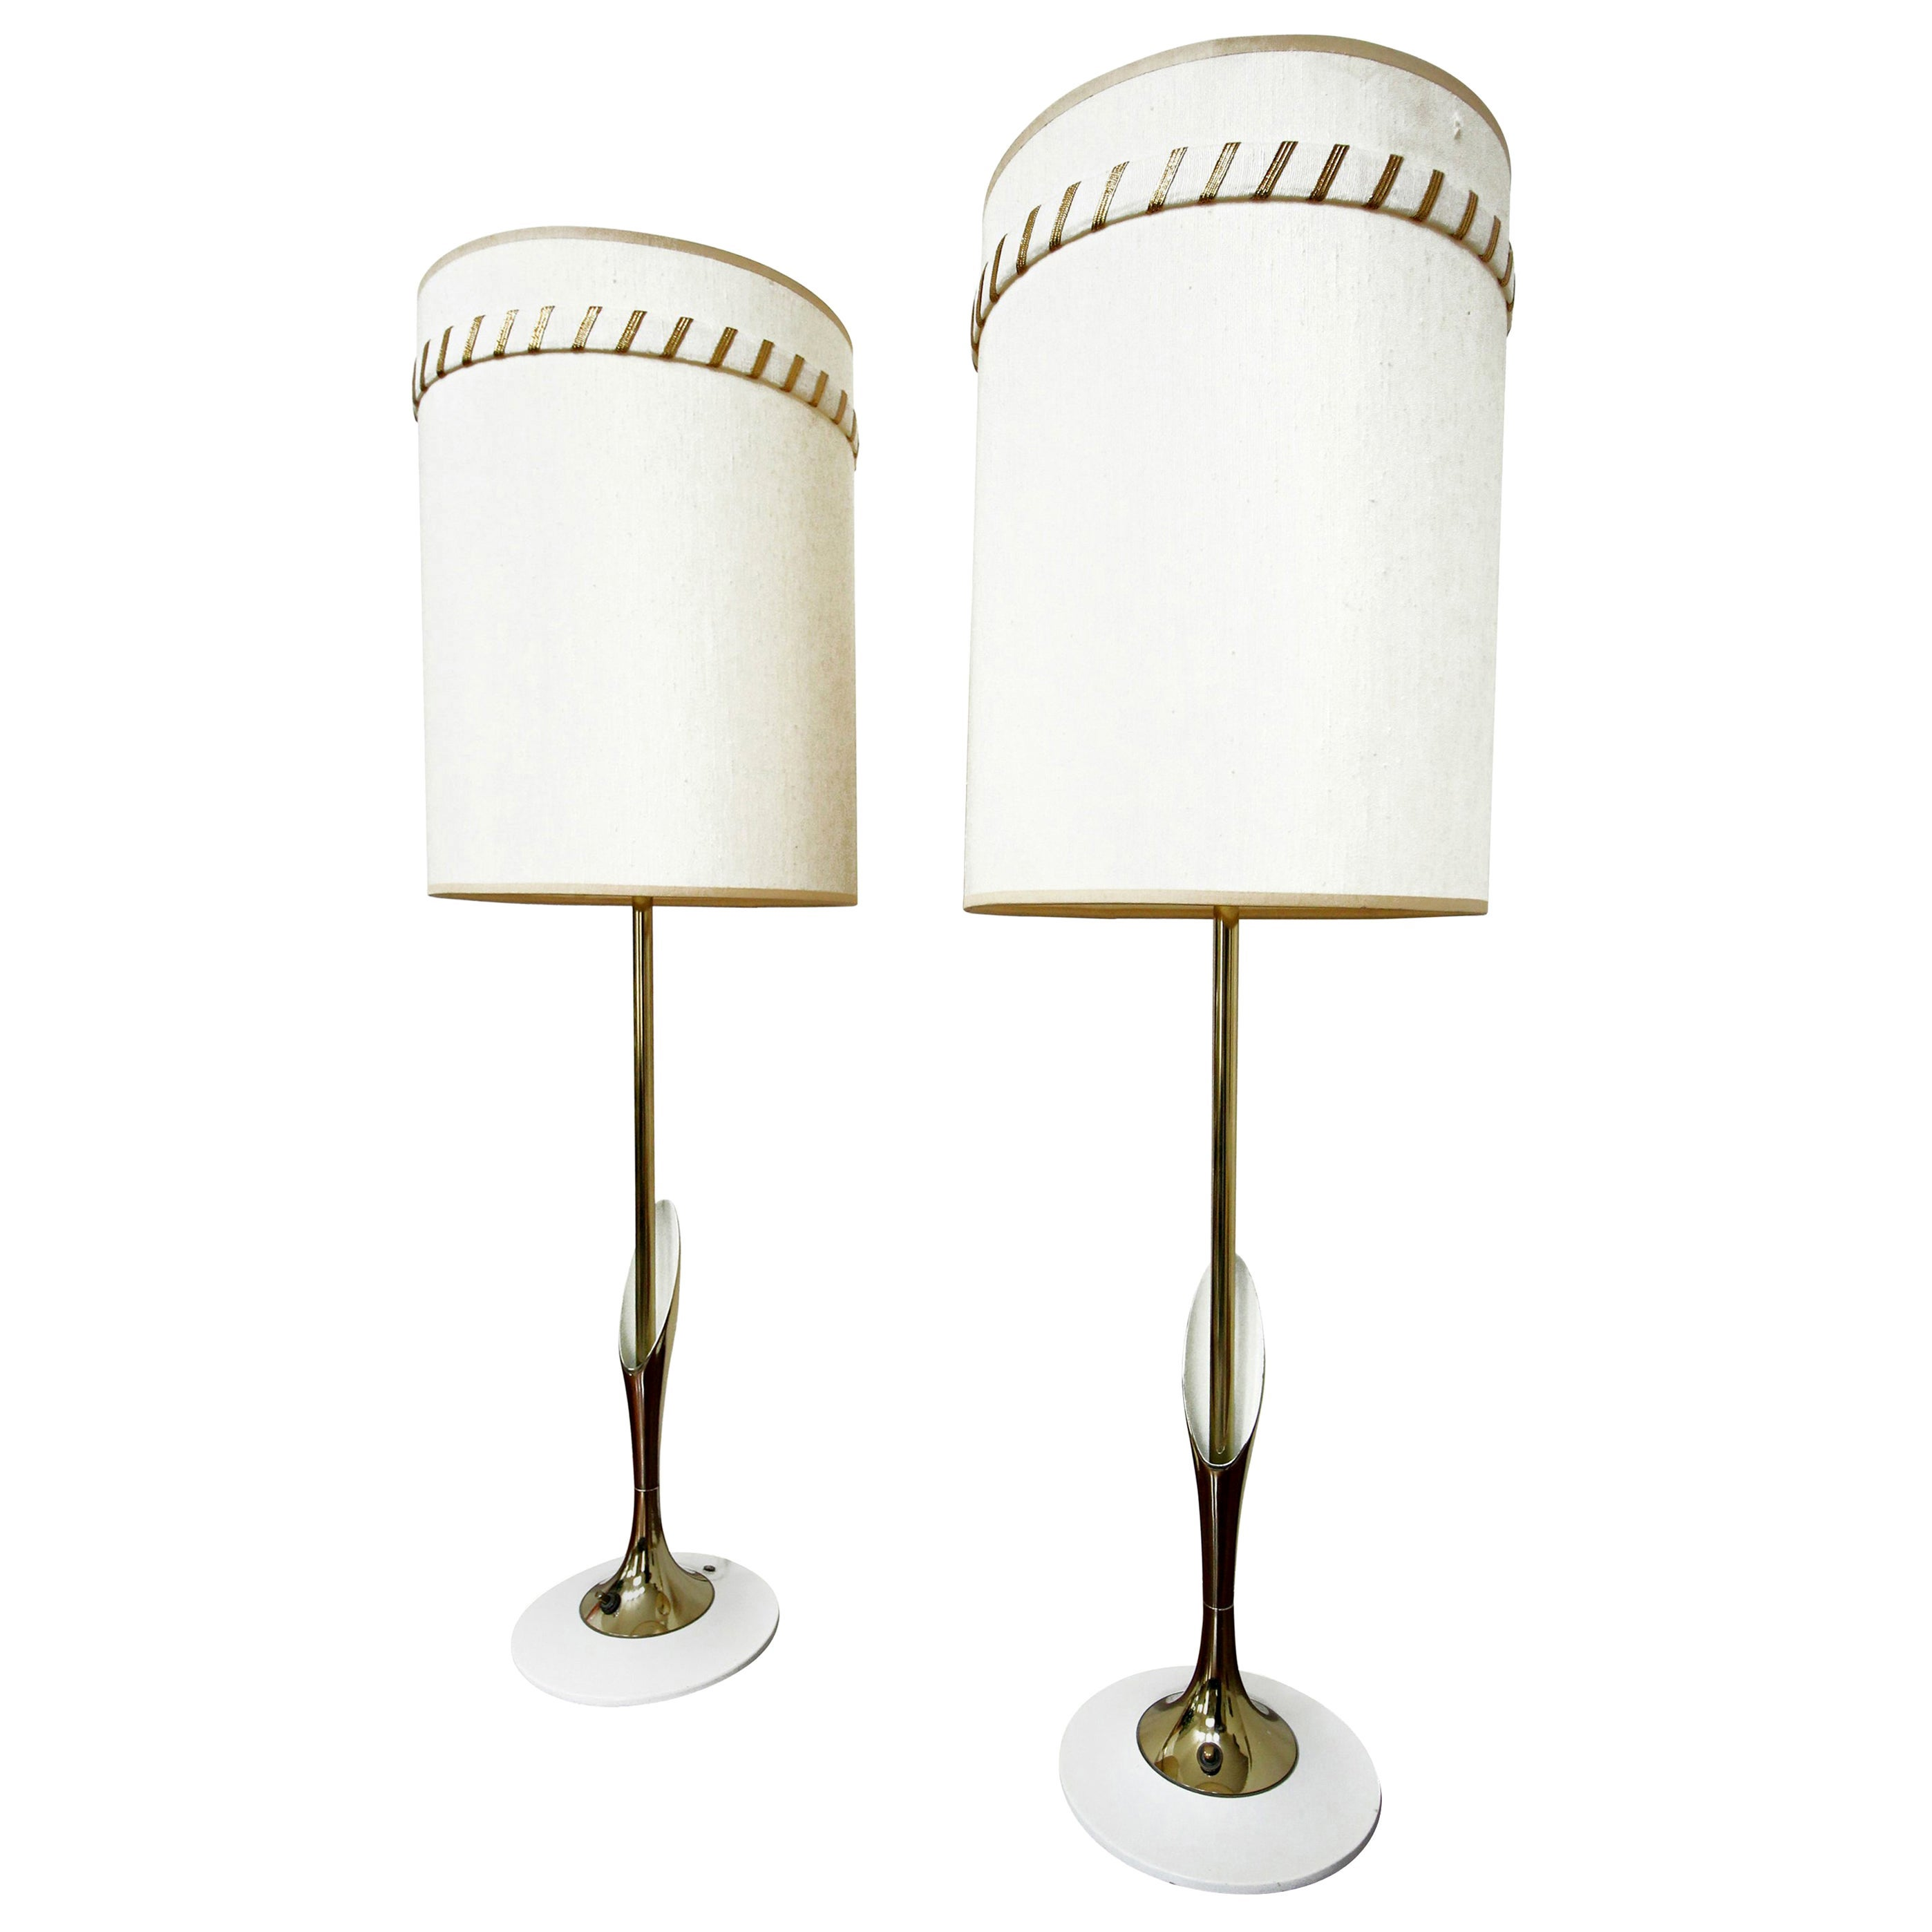 Pair of Midcentury Sculptural Brass Lamps by Laurel Lamp Company